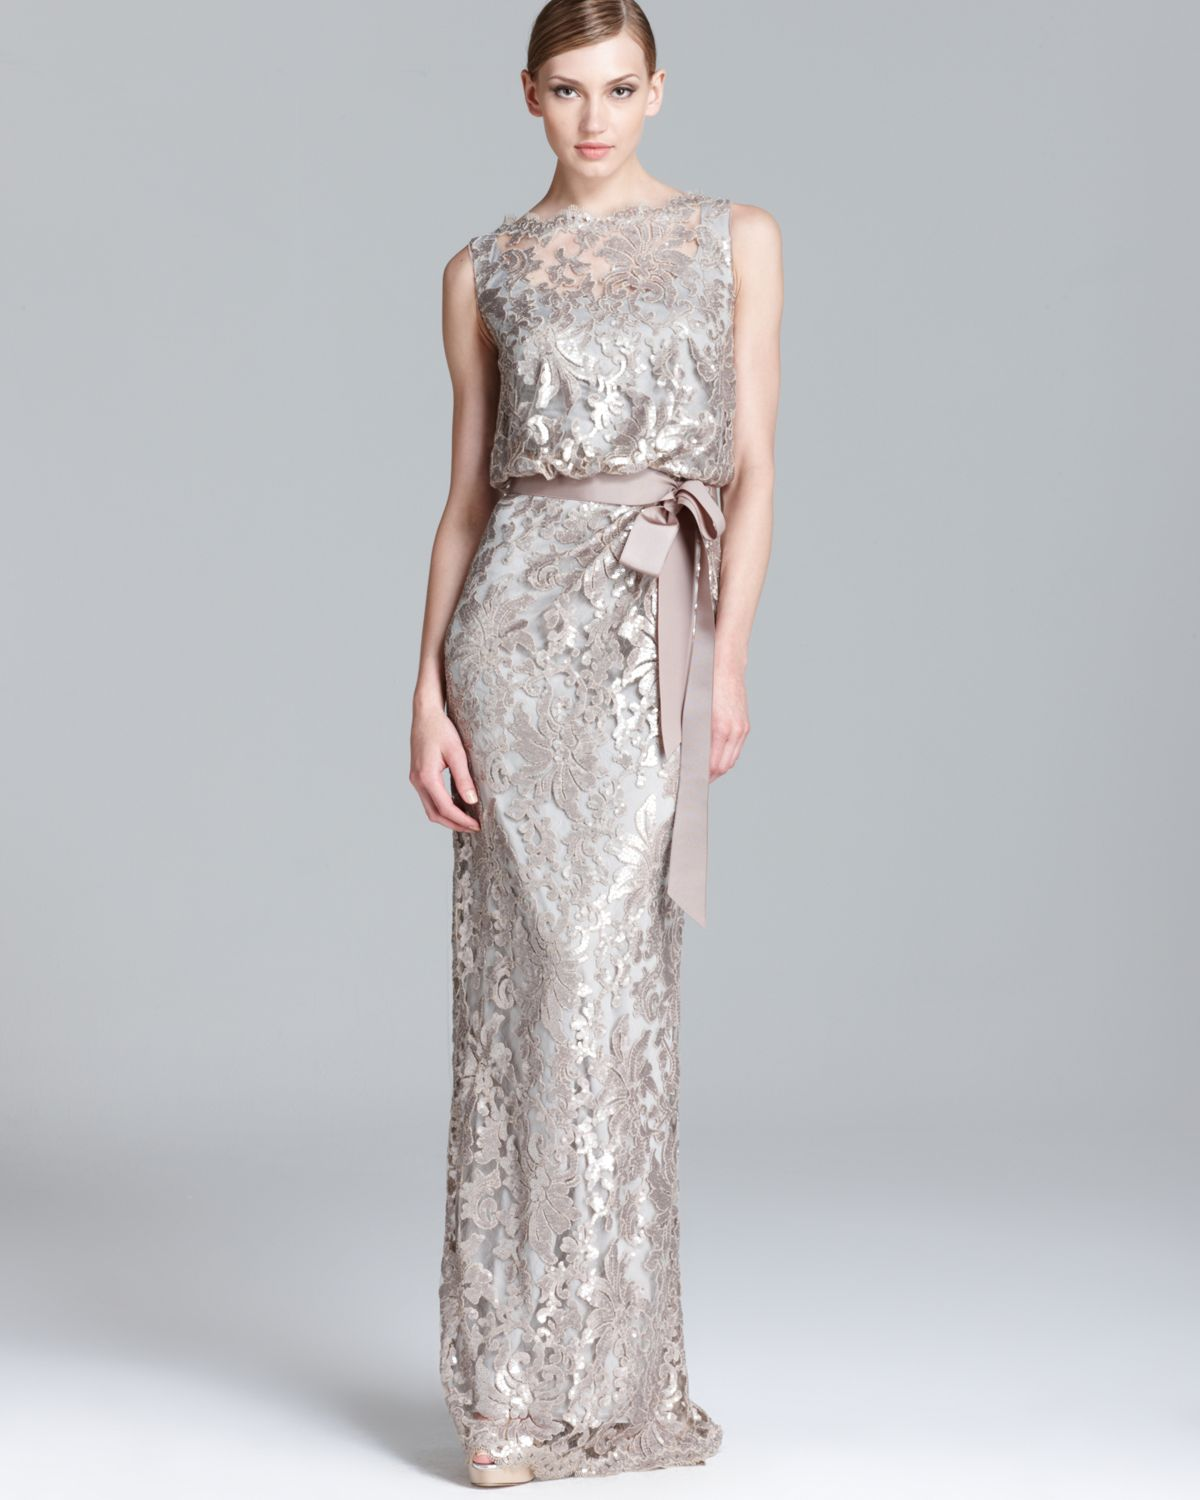 Sequin Lace Gown Sleeveless Blouson